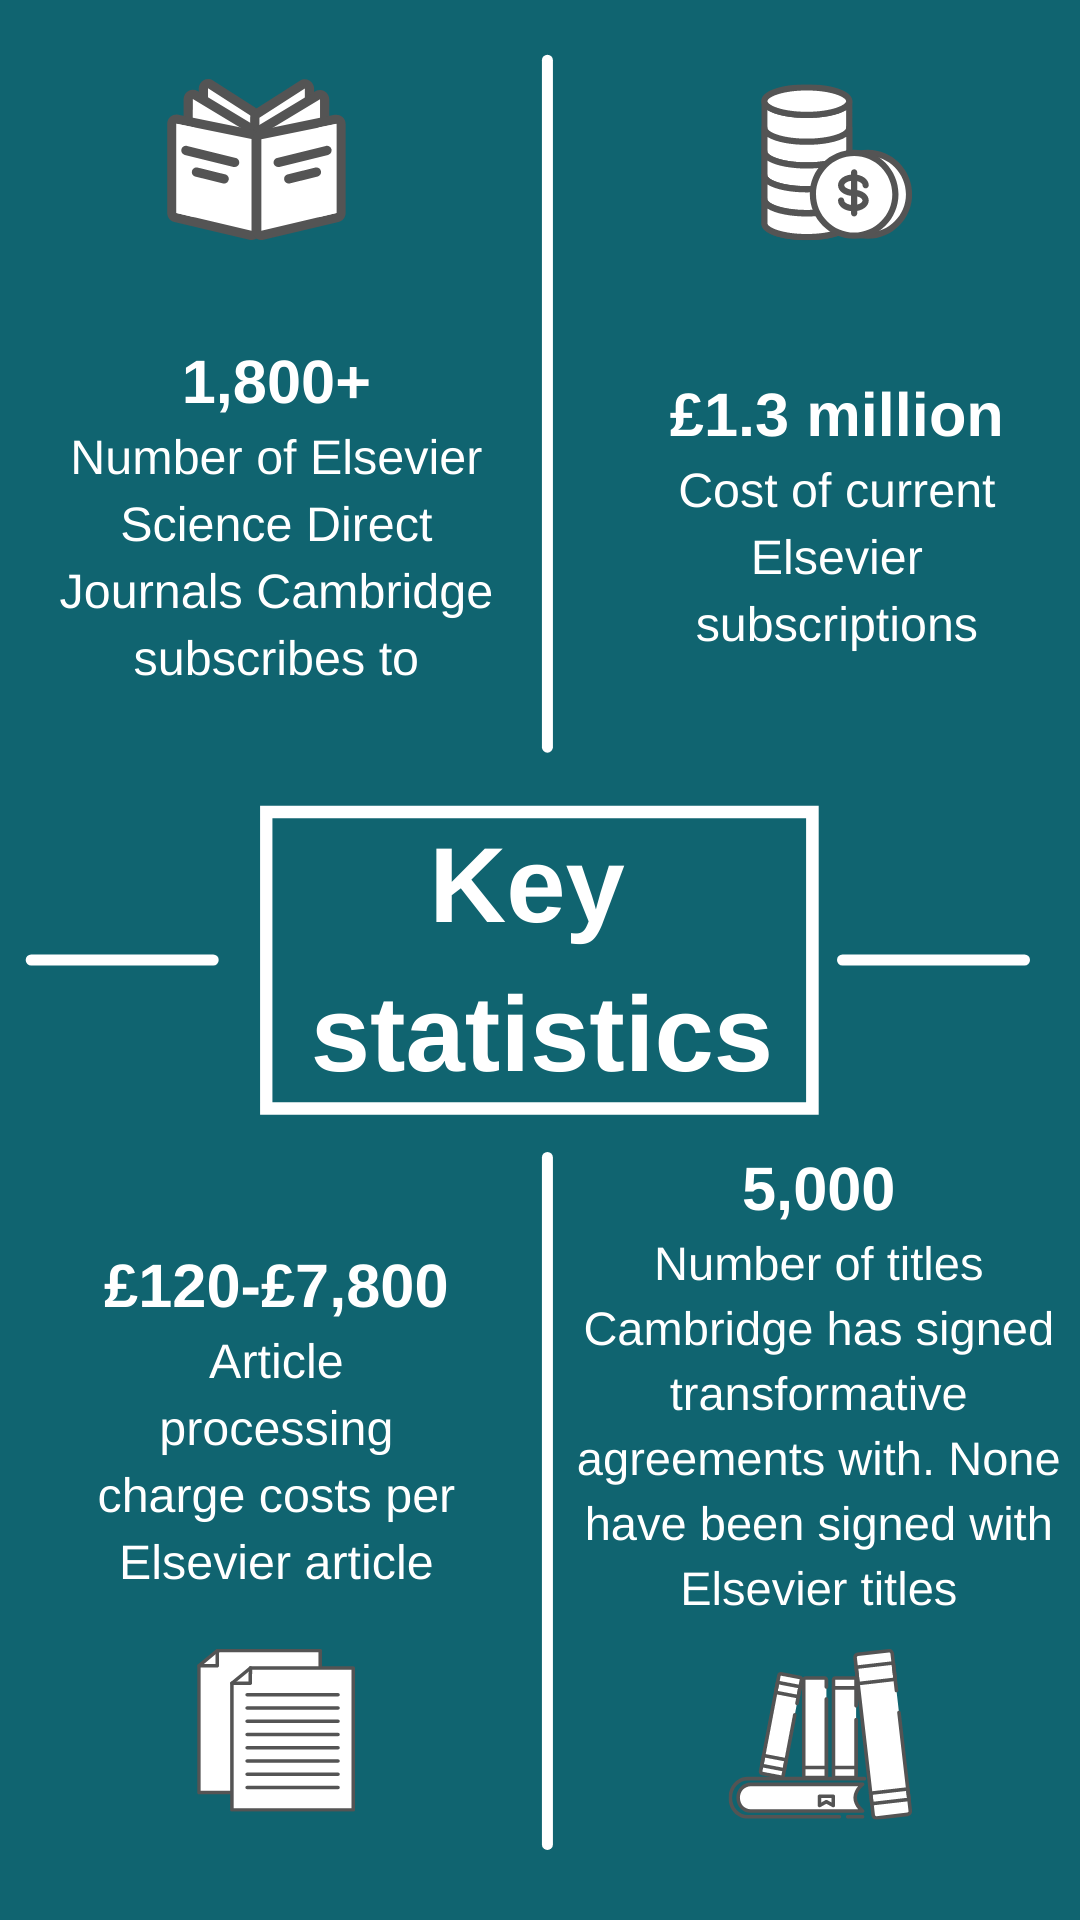 Infographic reiterating key statistics given in text on the main page